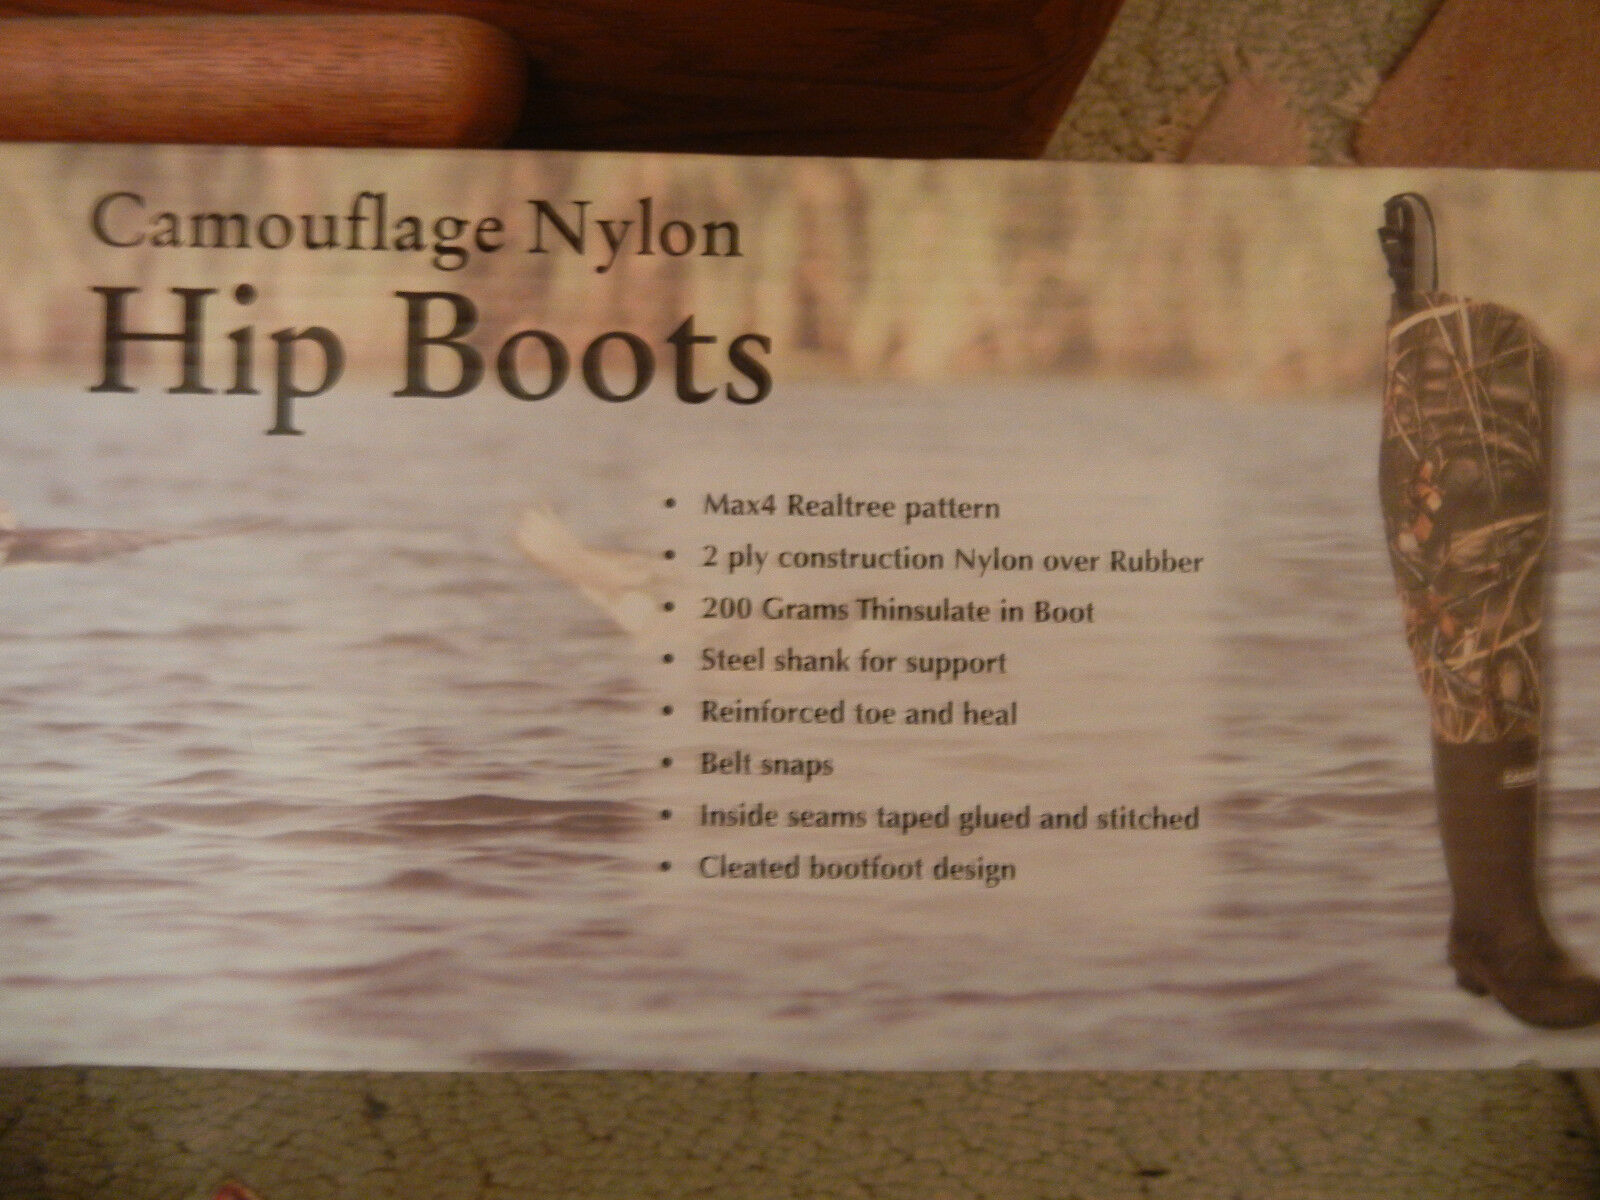 Caddis Camouflage Camo Nylon 2 ply Hip Boots  New Box Lightweight 7 8 9 10 12 13  selling well all over the world